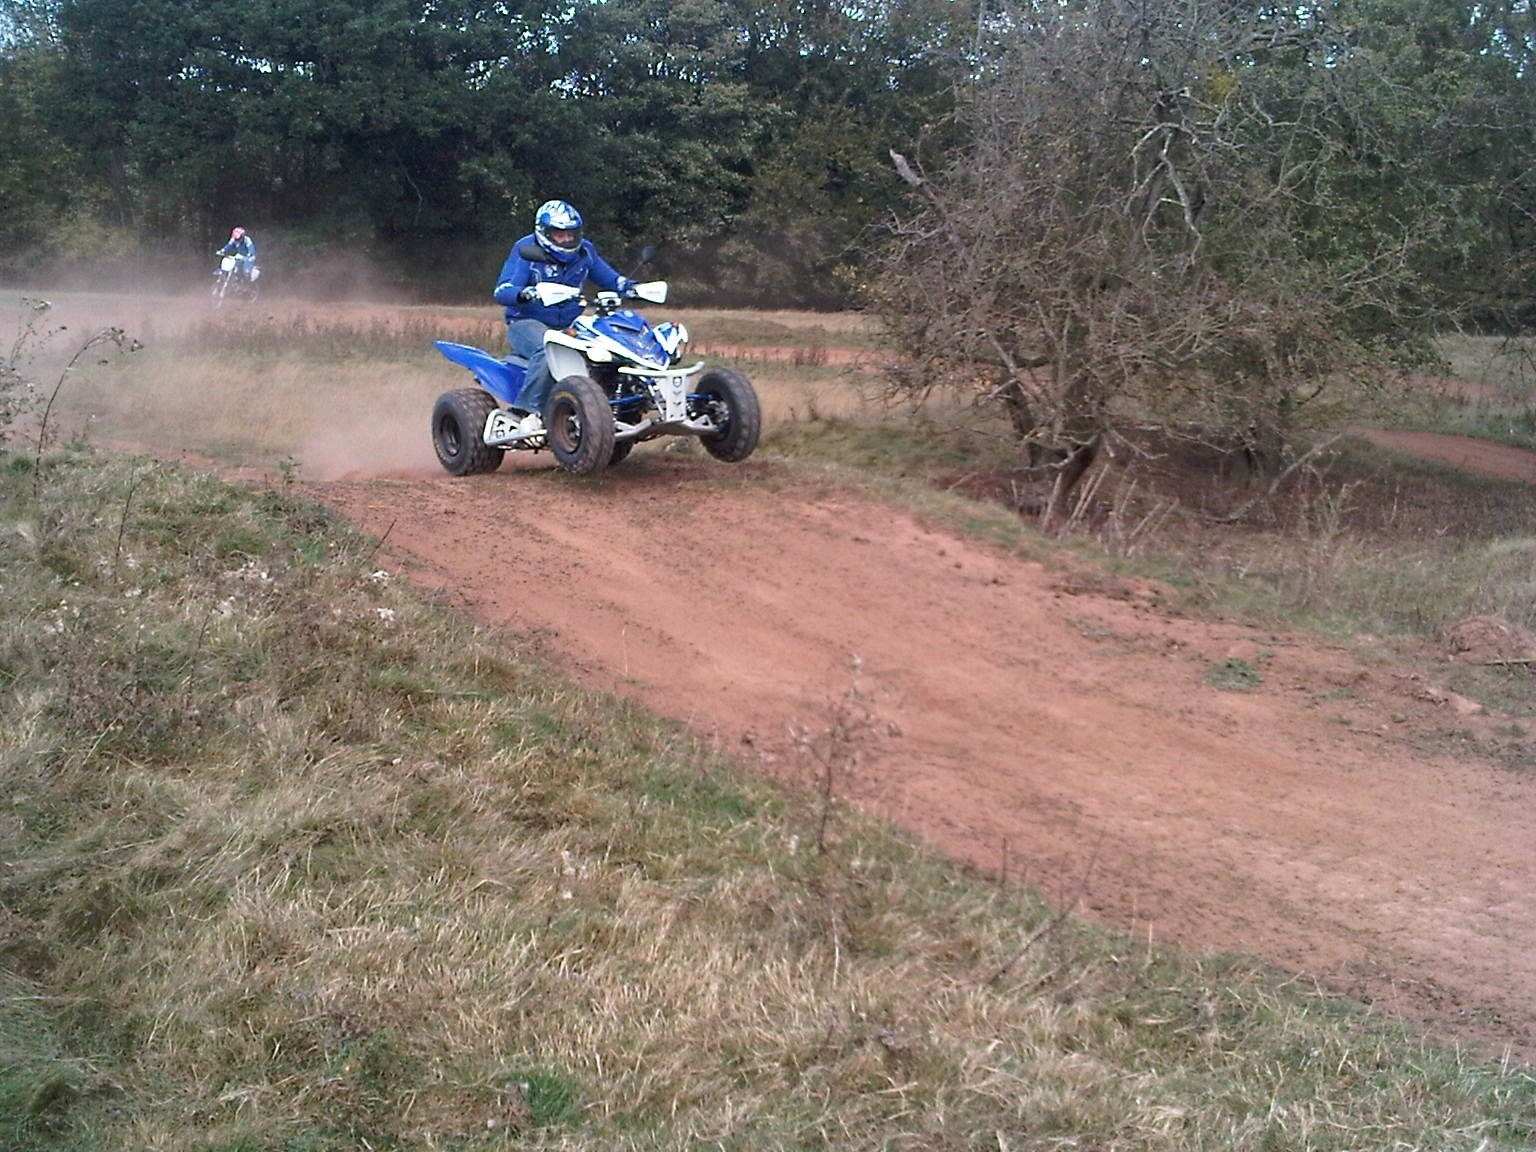 Anthony jumping on his quad